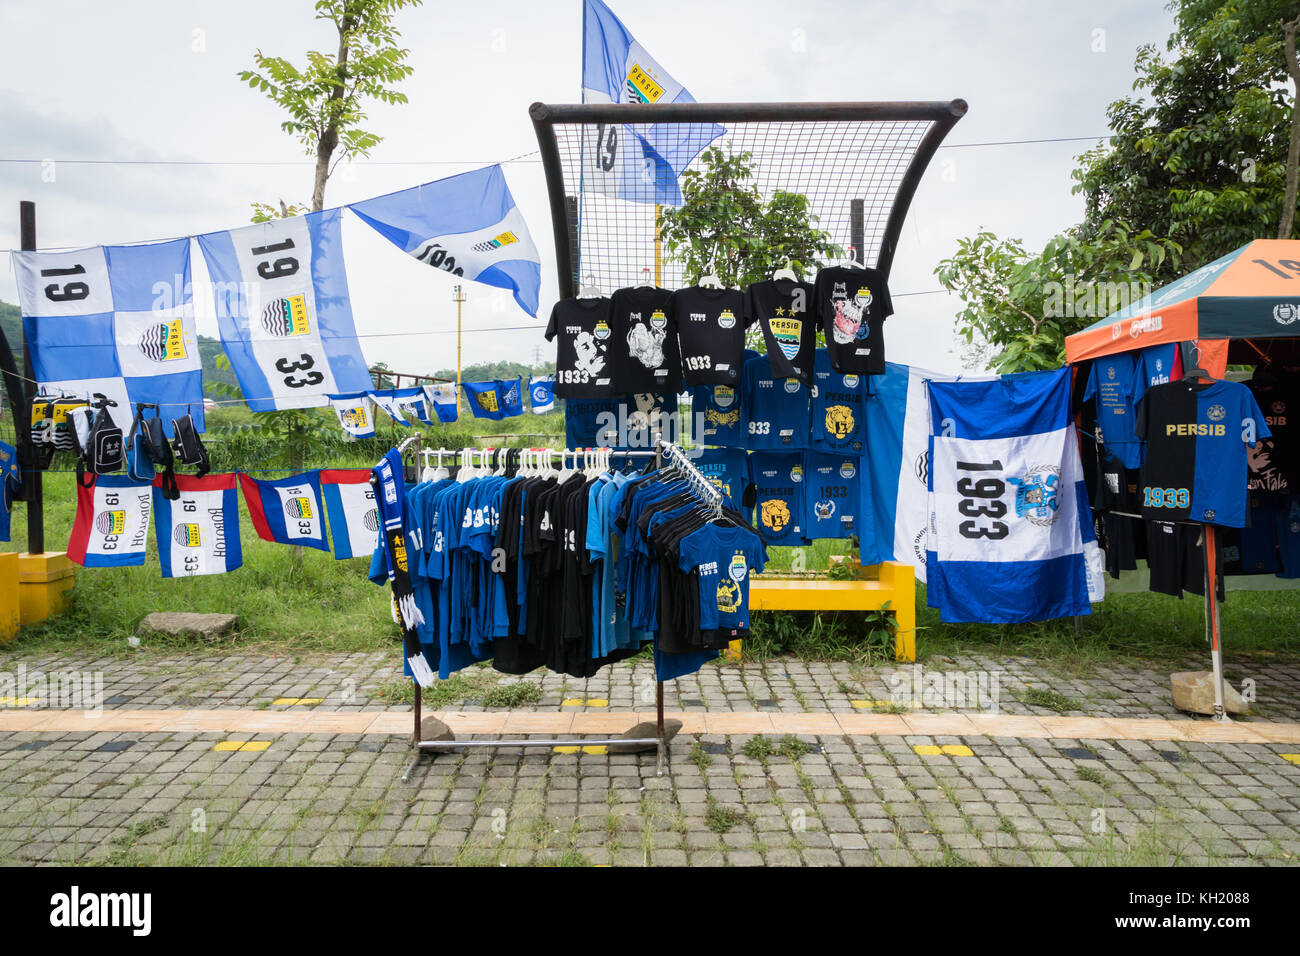 Bandung, Indonesia - October 2017: Fan items at Jalak Harupat Soreang Stadium, the stadium used by the local professional - Stock Image